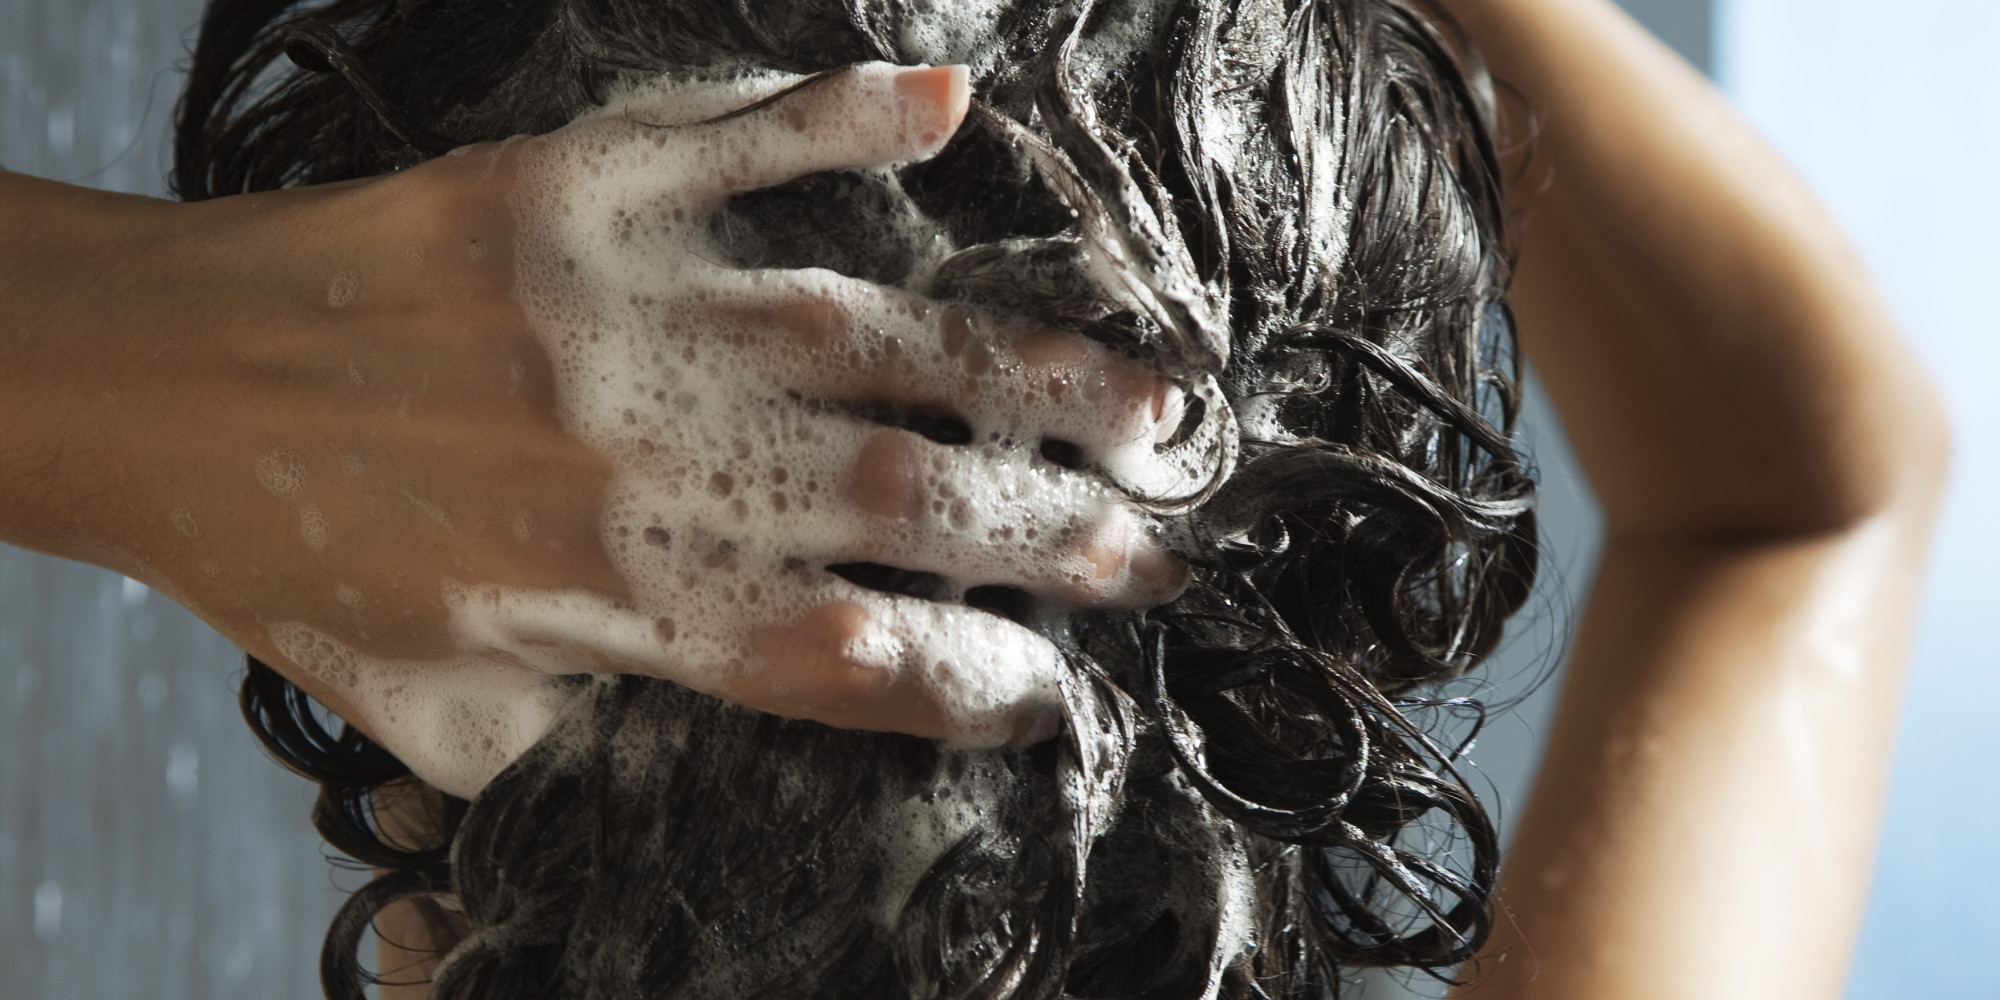 Illegal Cancer-Causing Chemicals Found in Nearly 100 Shampoo Brands